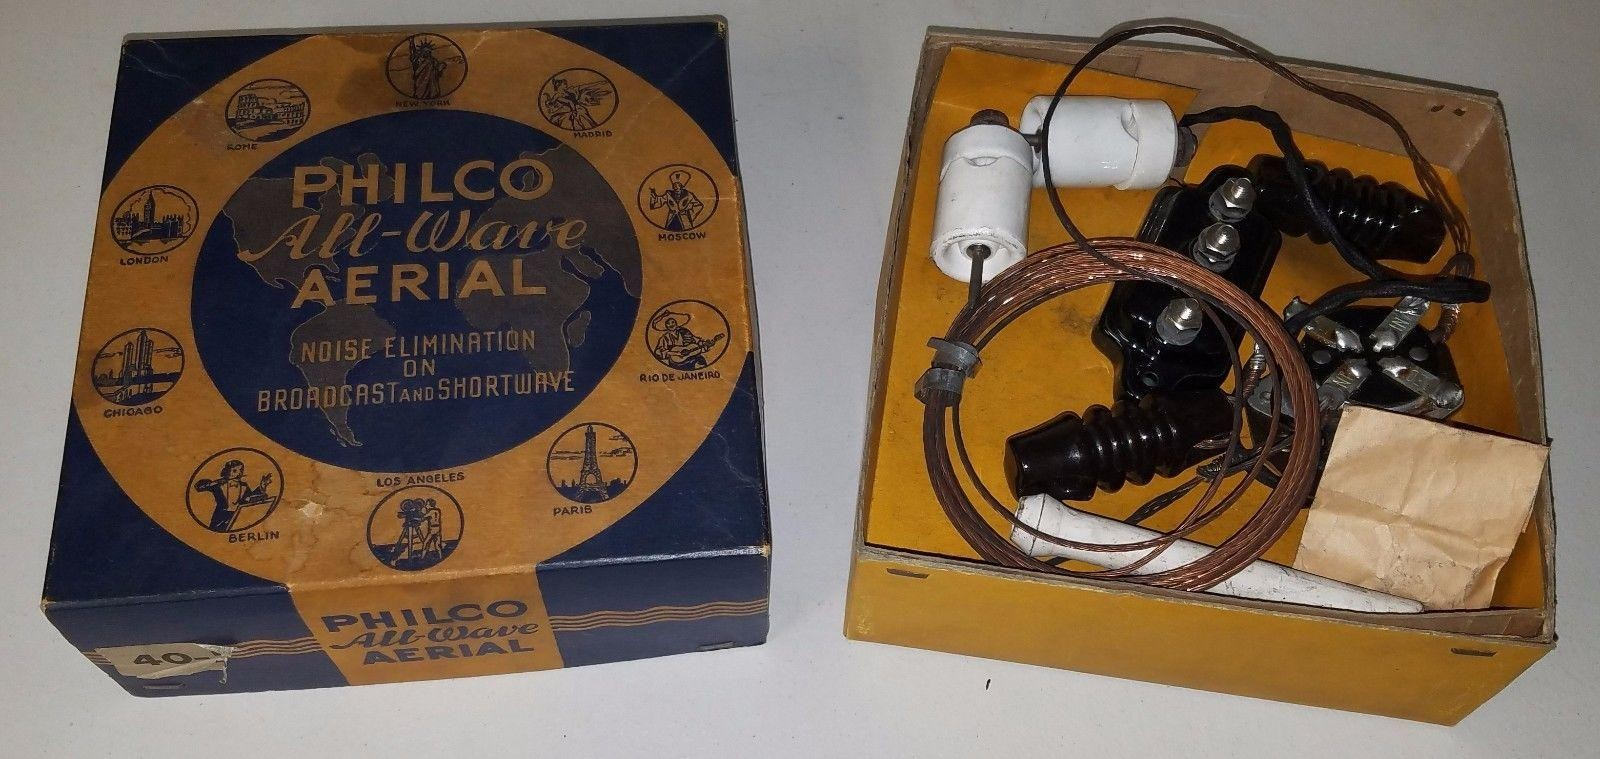 vintage-1930s-philco-all-wave-aerial_1_18b8c68d31c4aed928f61909e2805f27.jpg